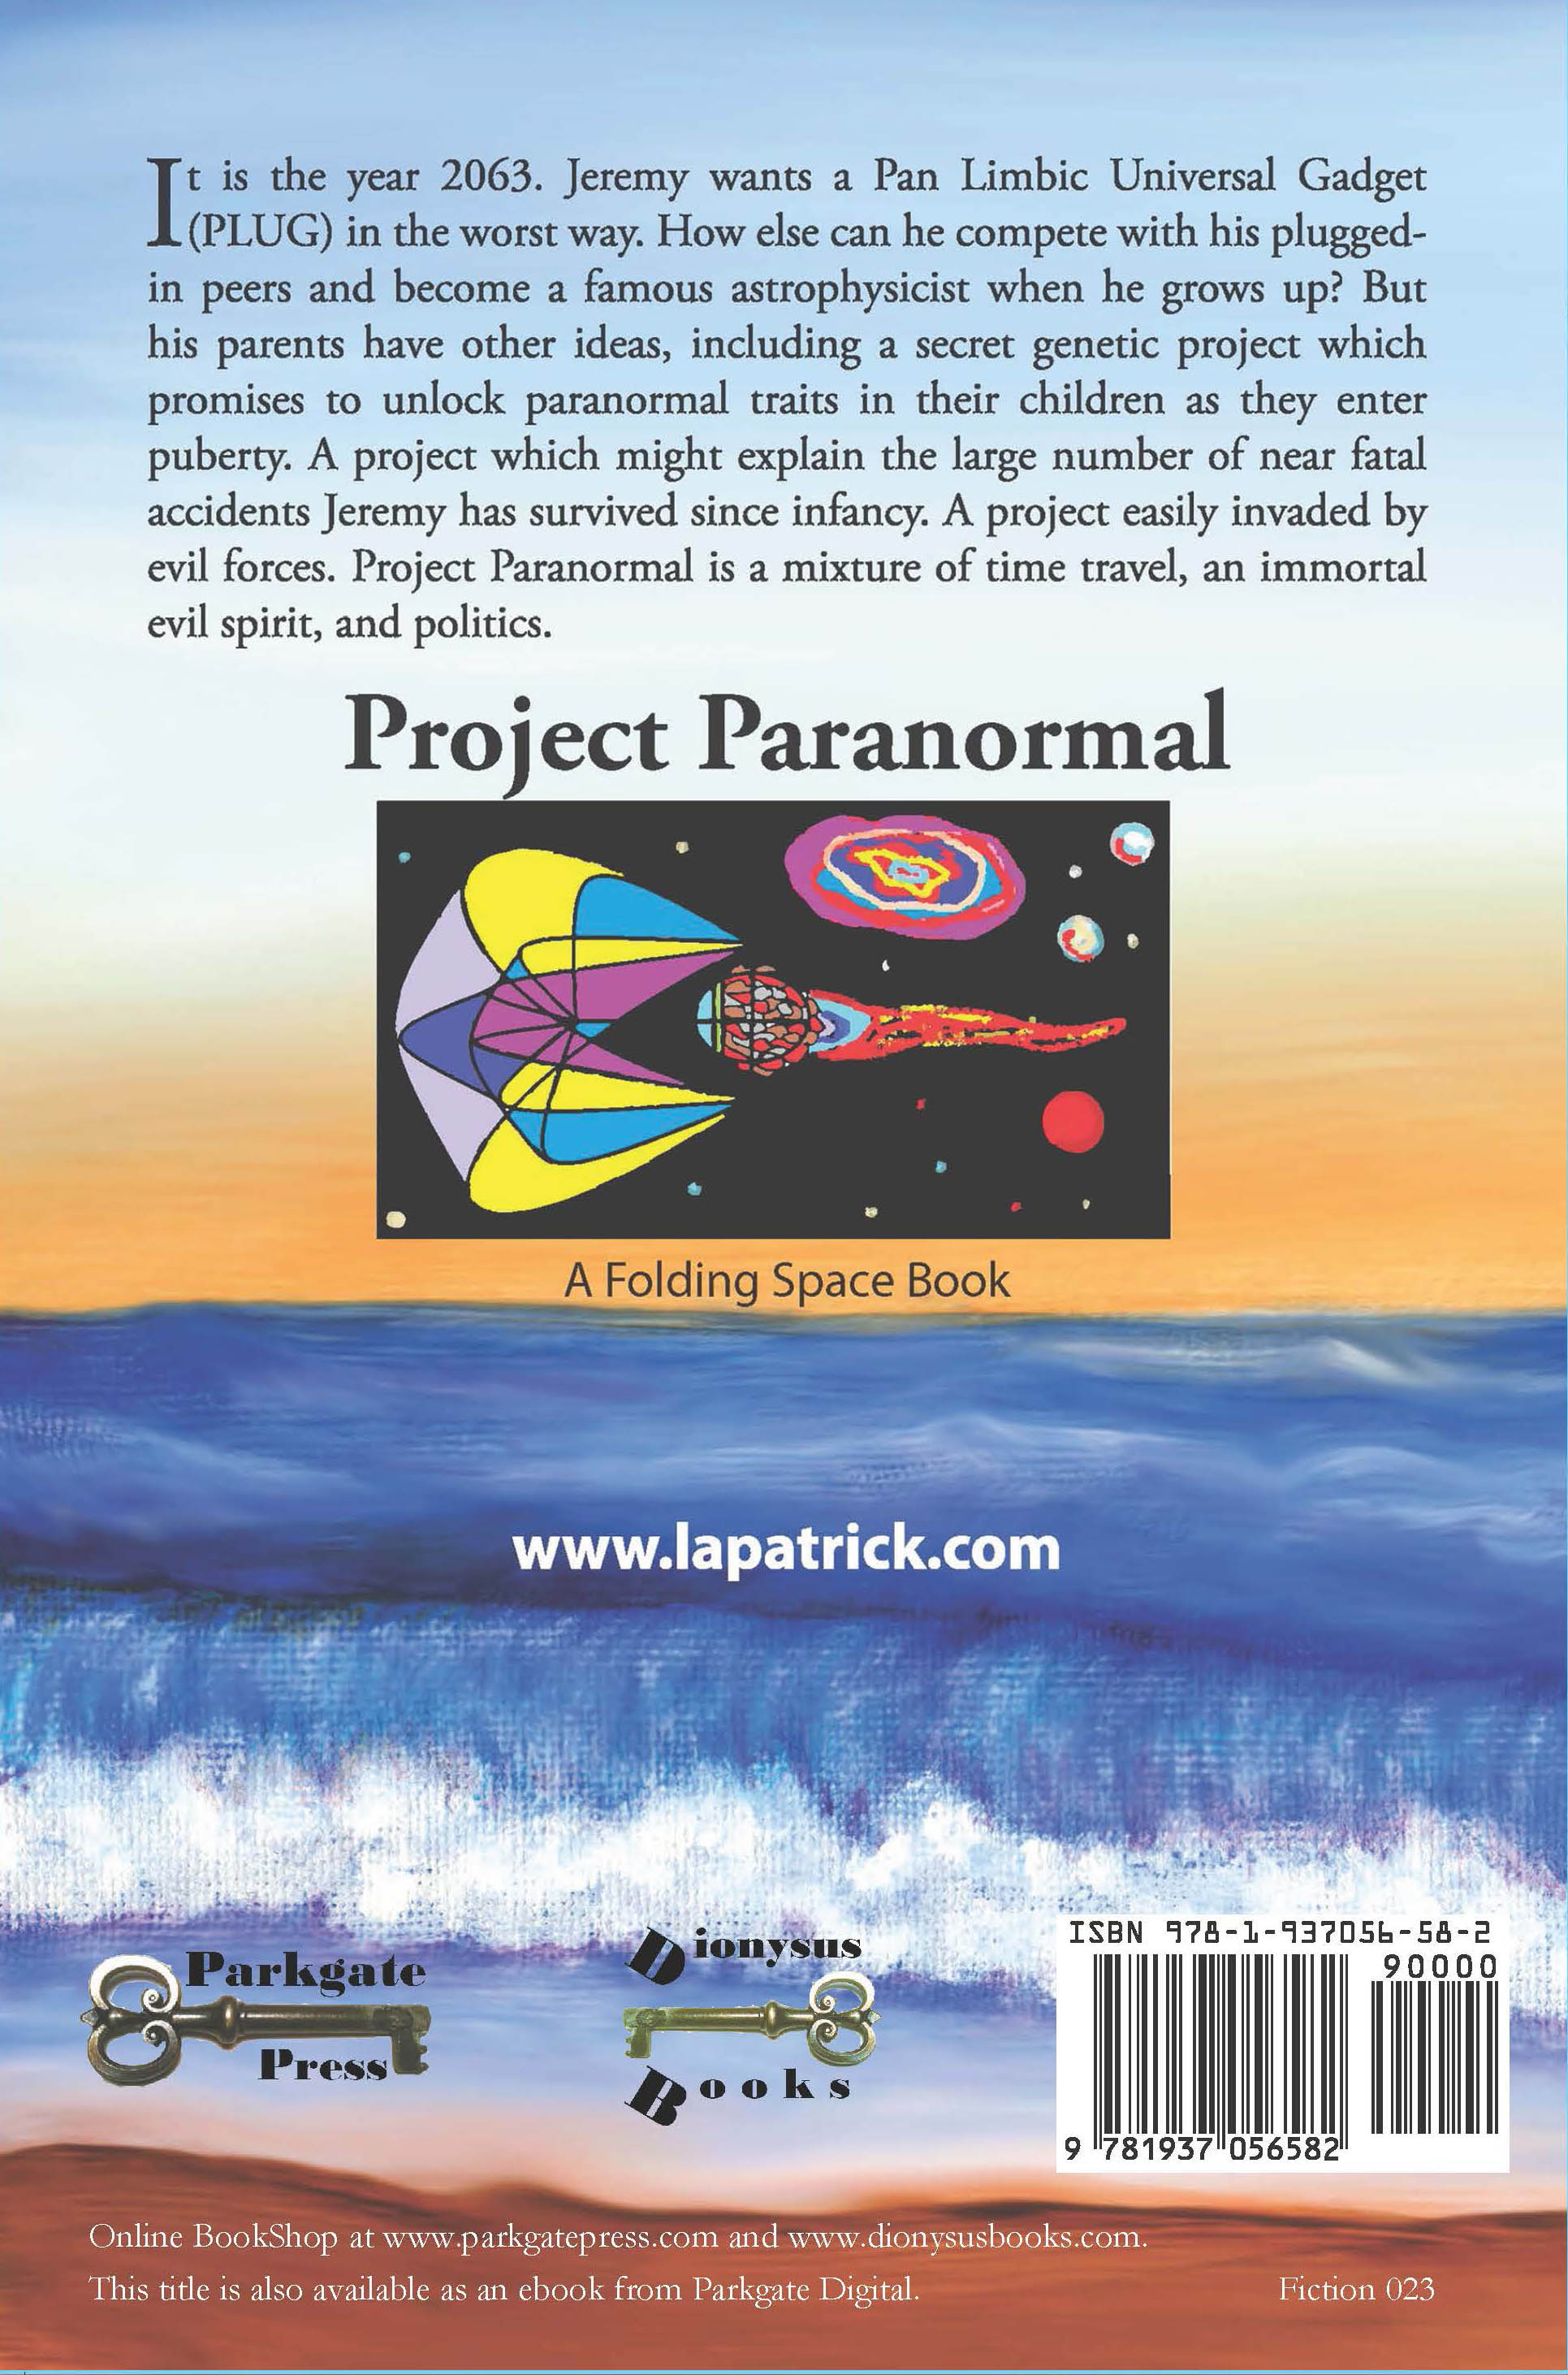 Project Paranormal